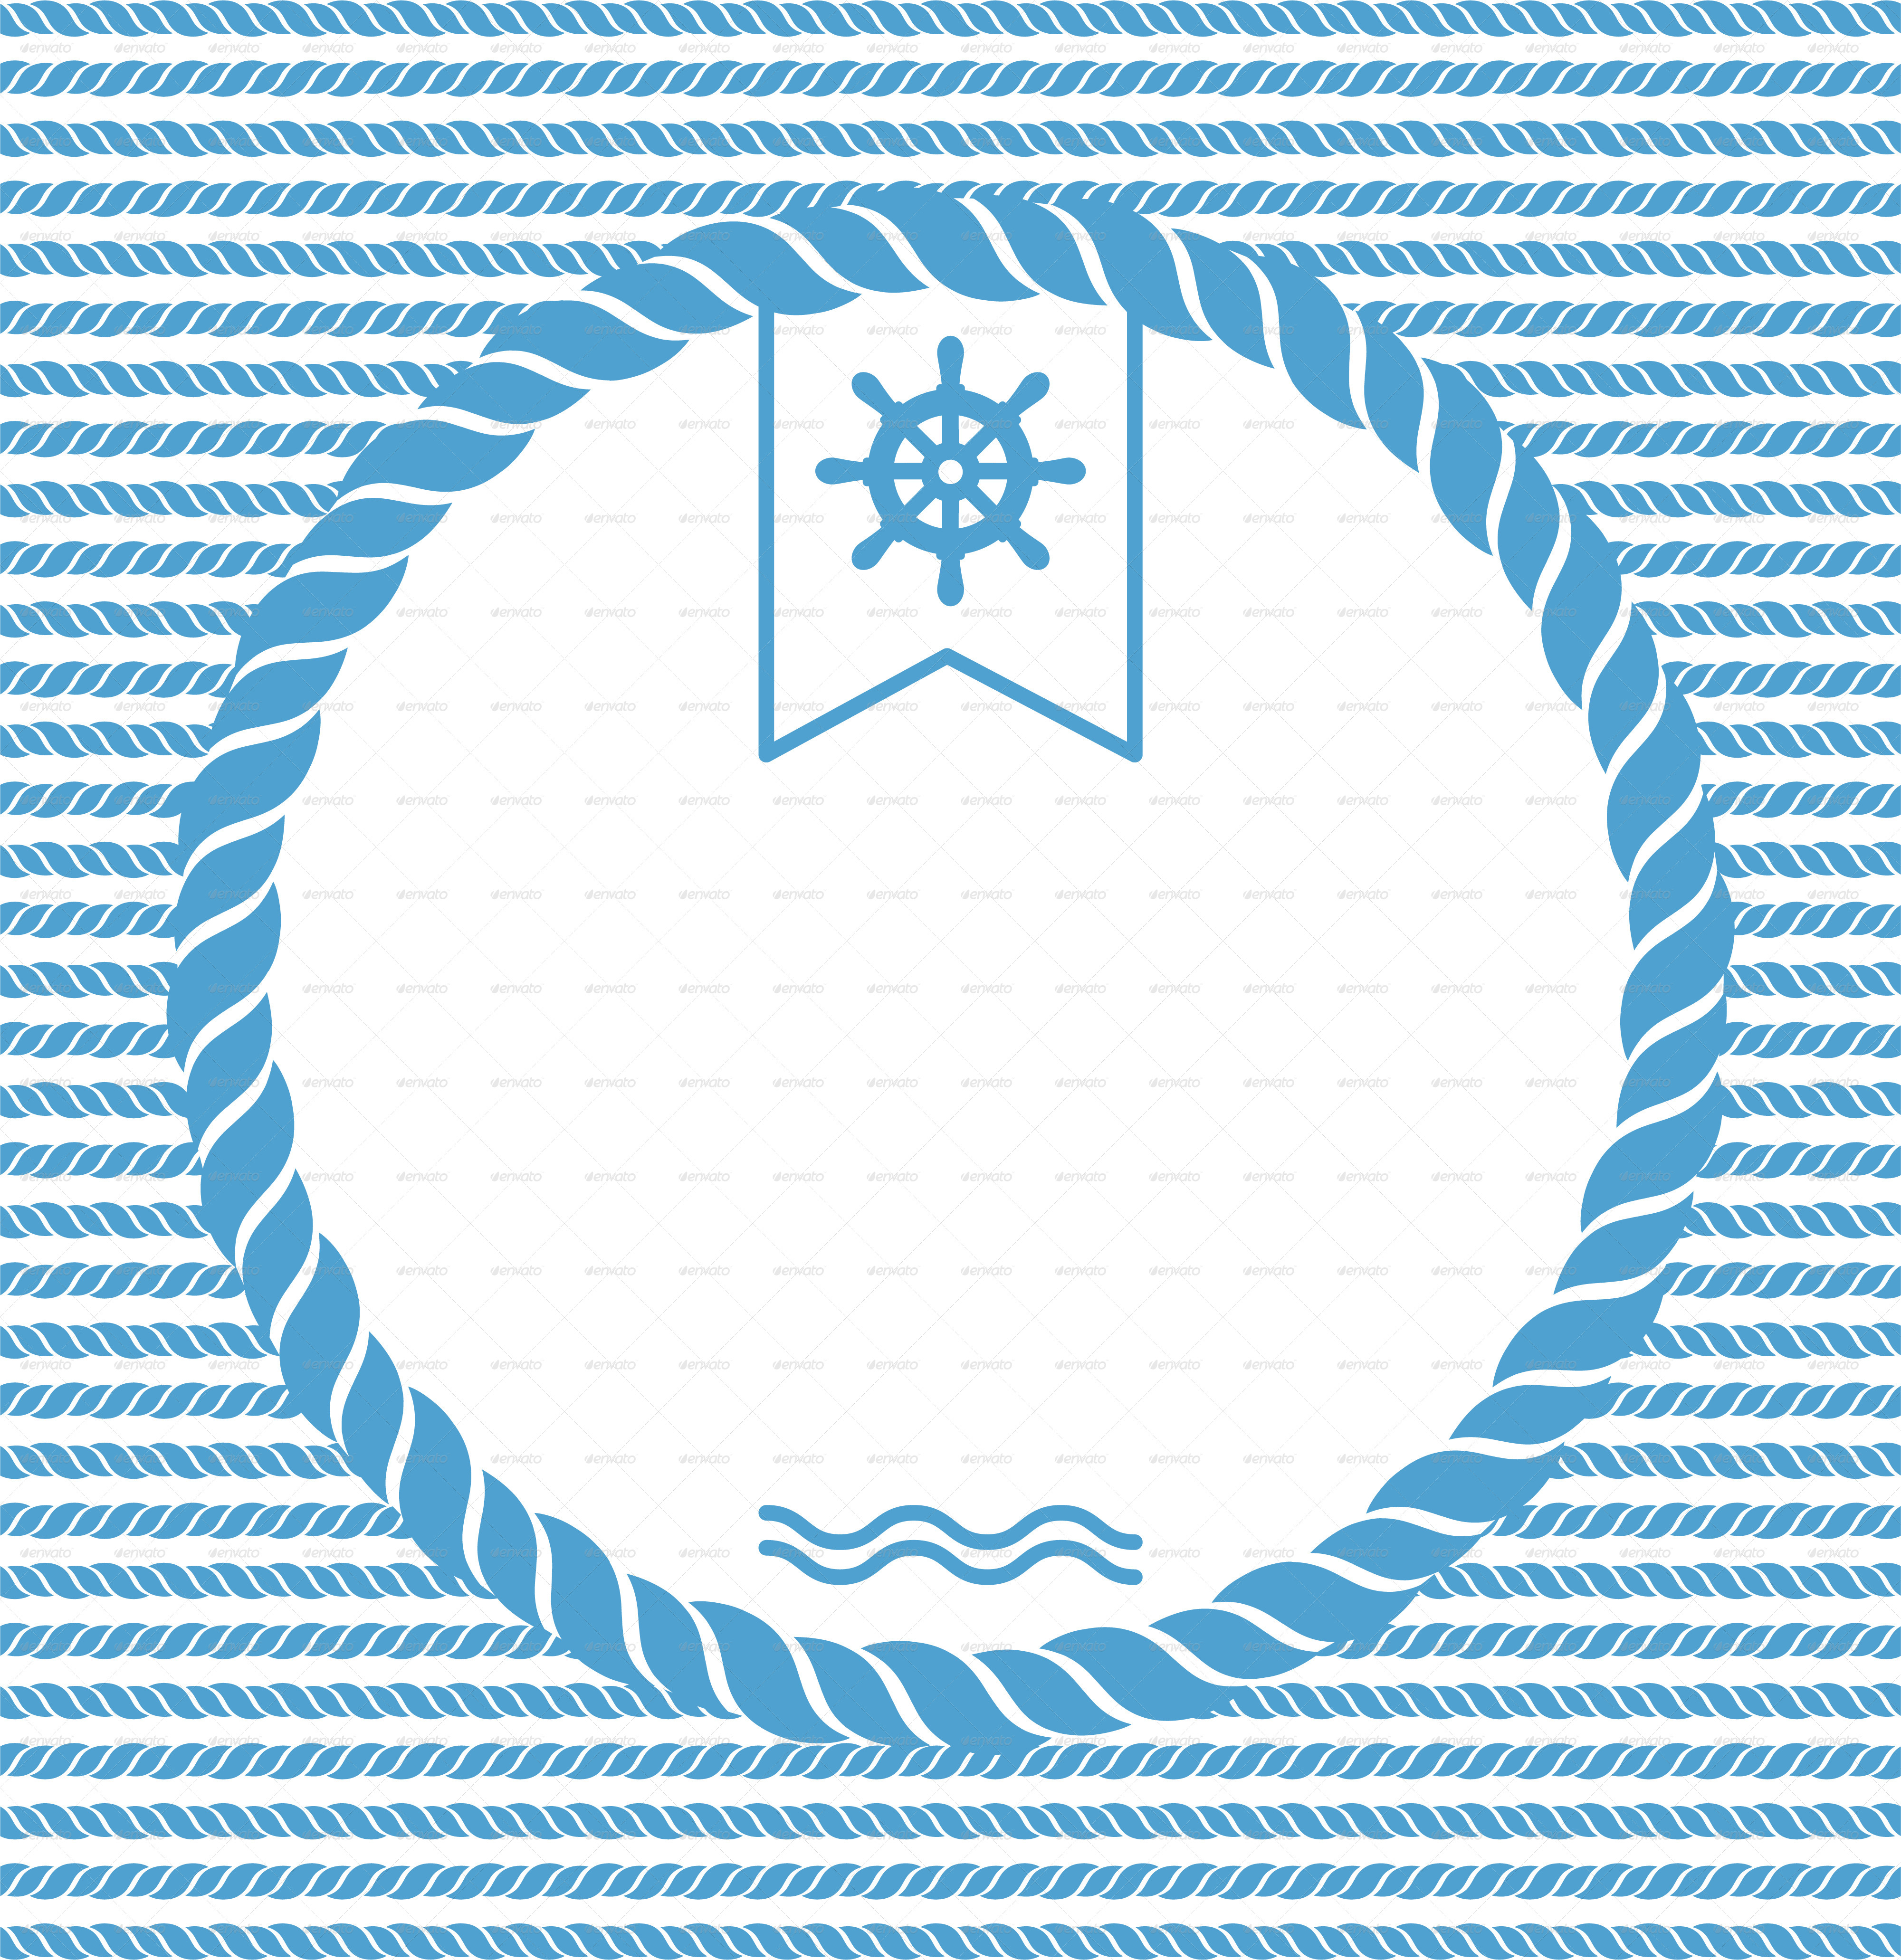 Nautical Background with Ropes by valru | GraphicRiver